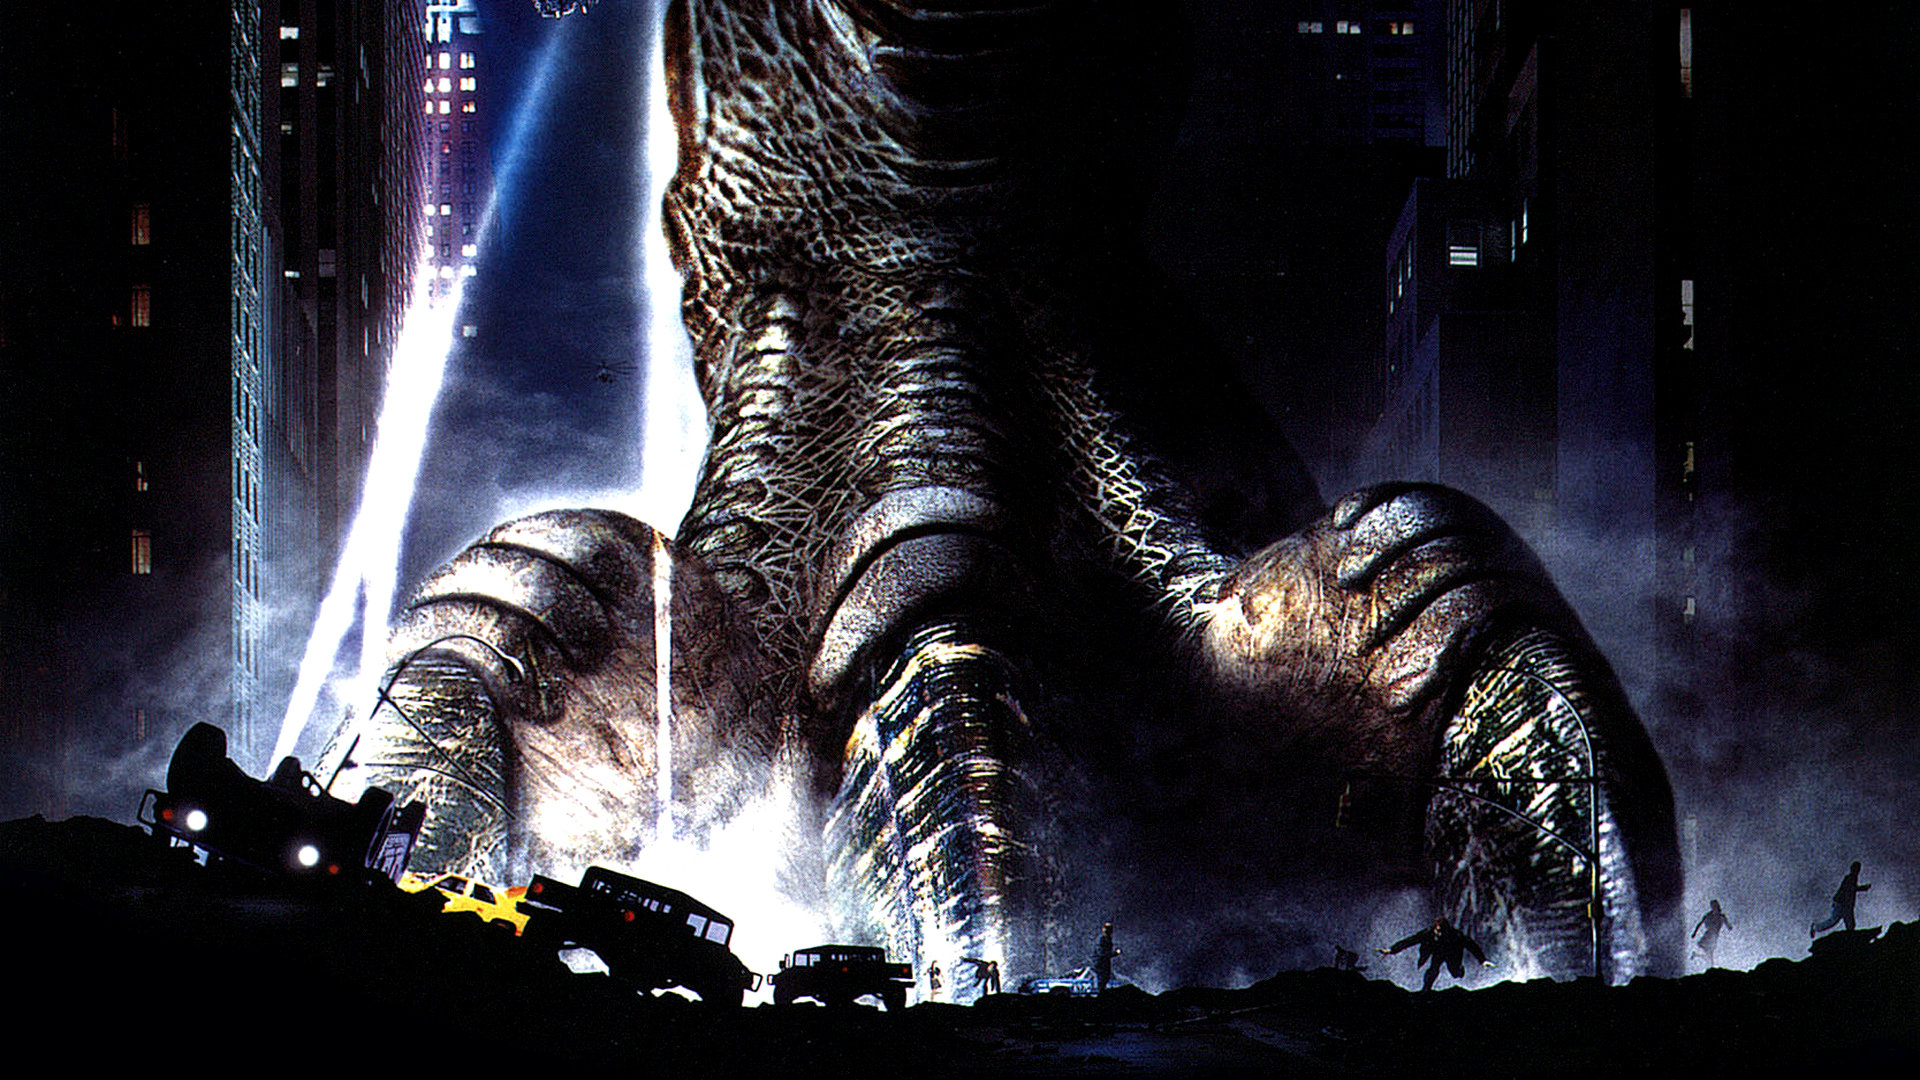 Movies Godzilla Wallpaper 1920x1080 Movies Godzilla 1920x1080